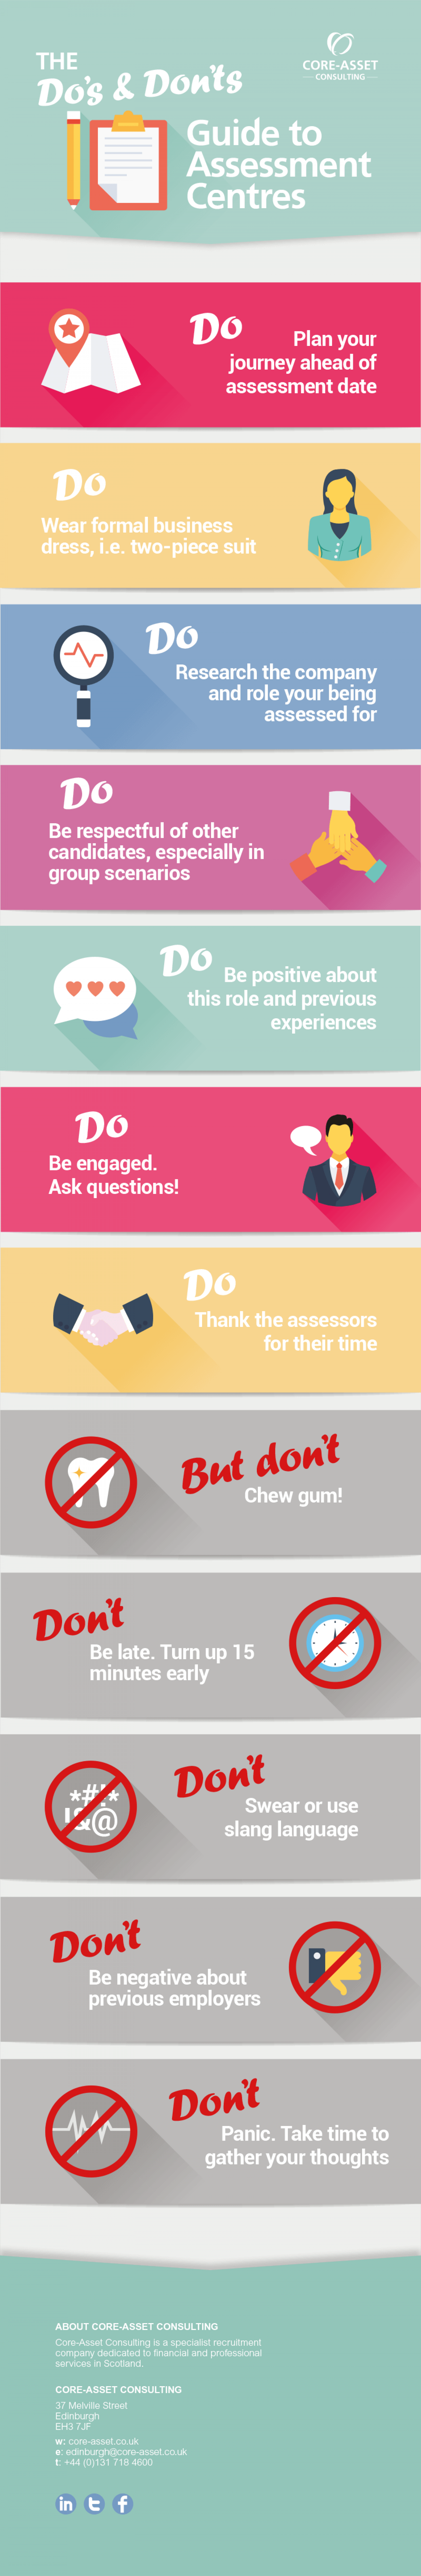 How to Succeed at an Assessment Centre Infographic